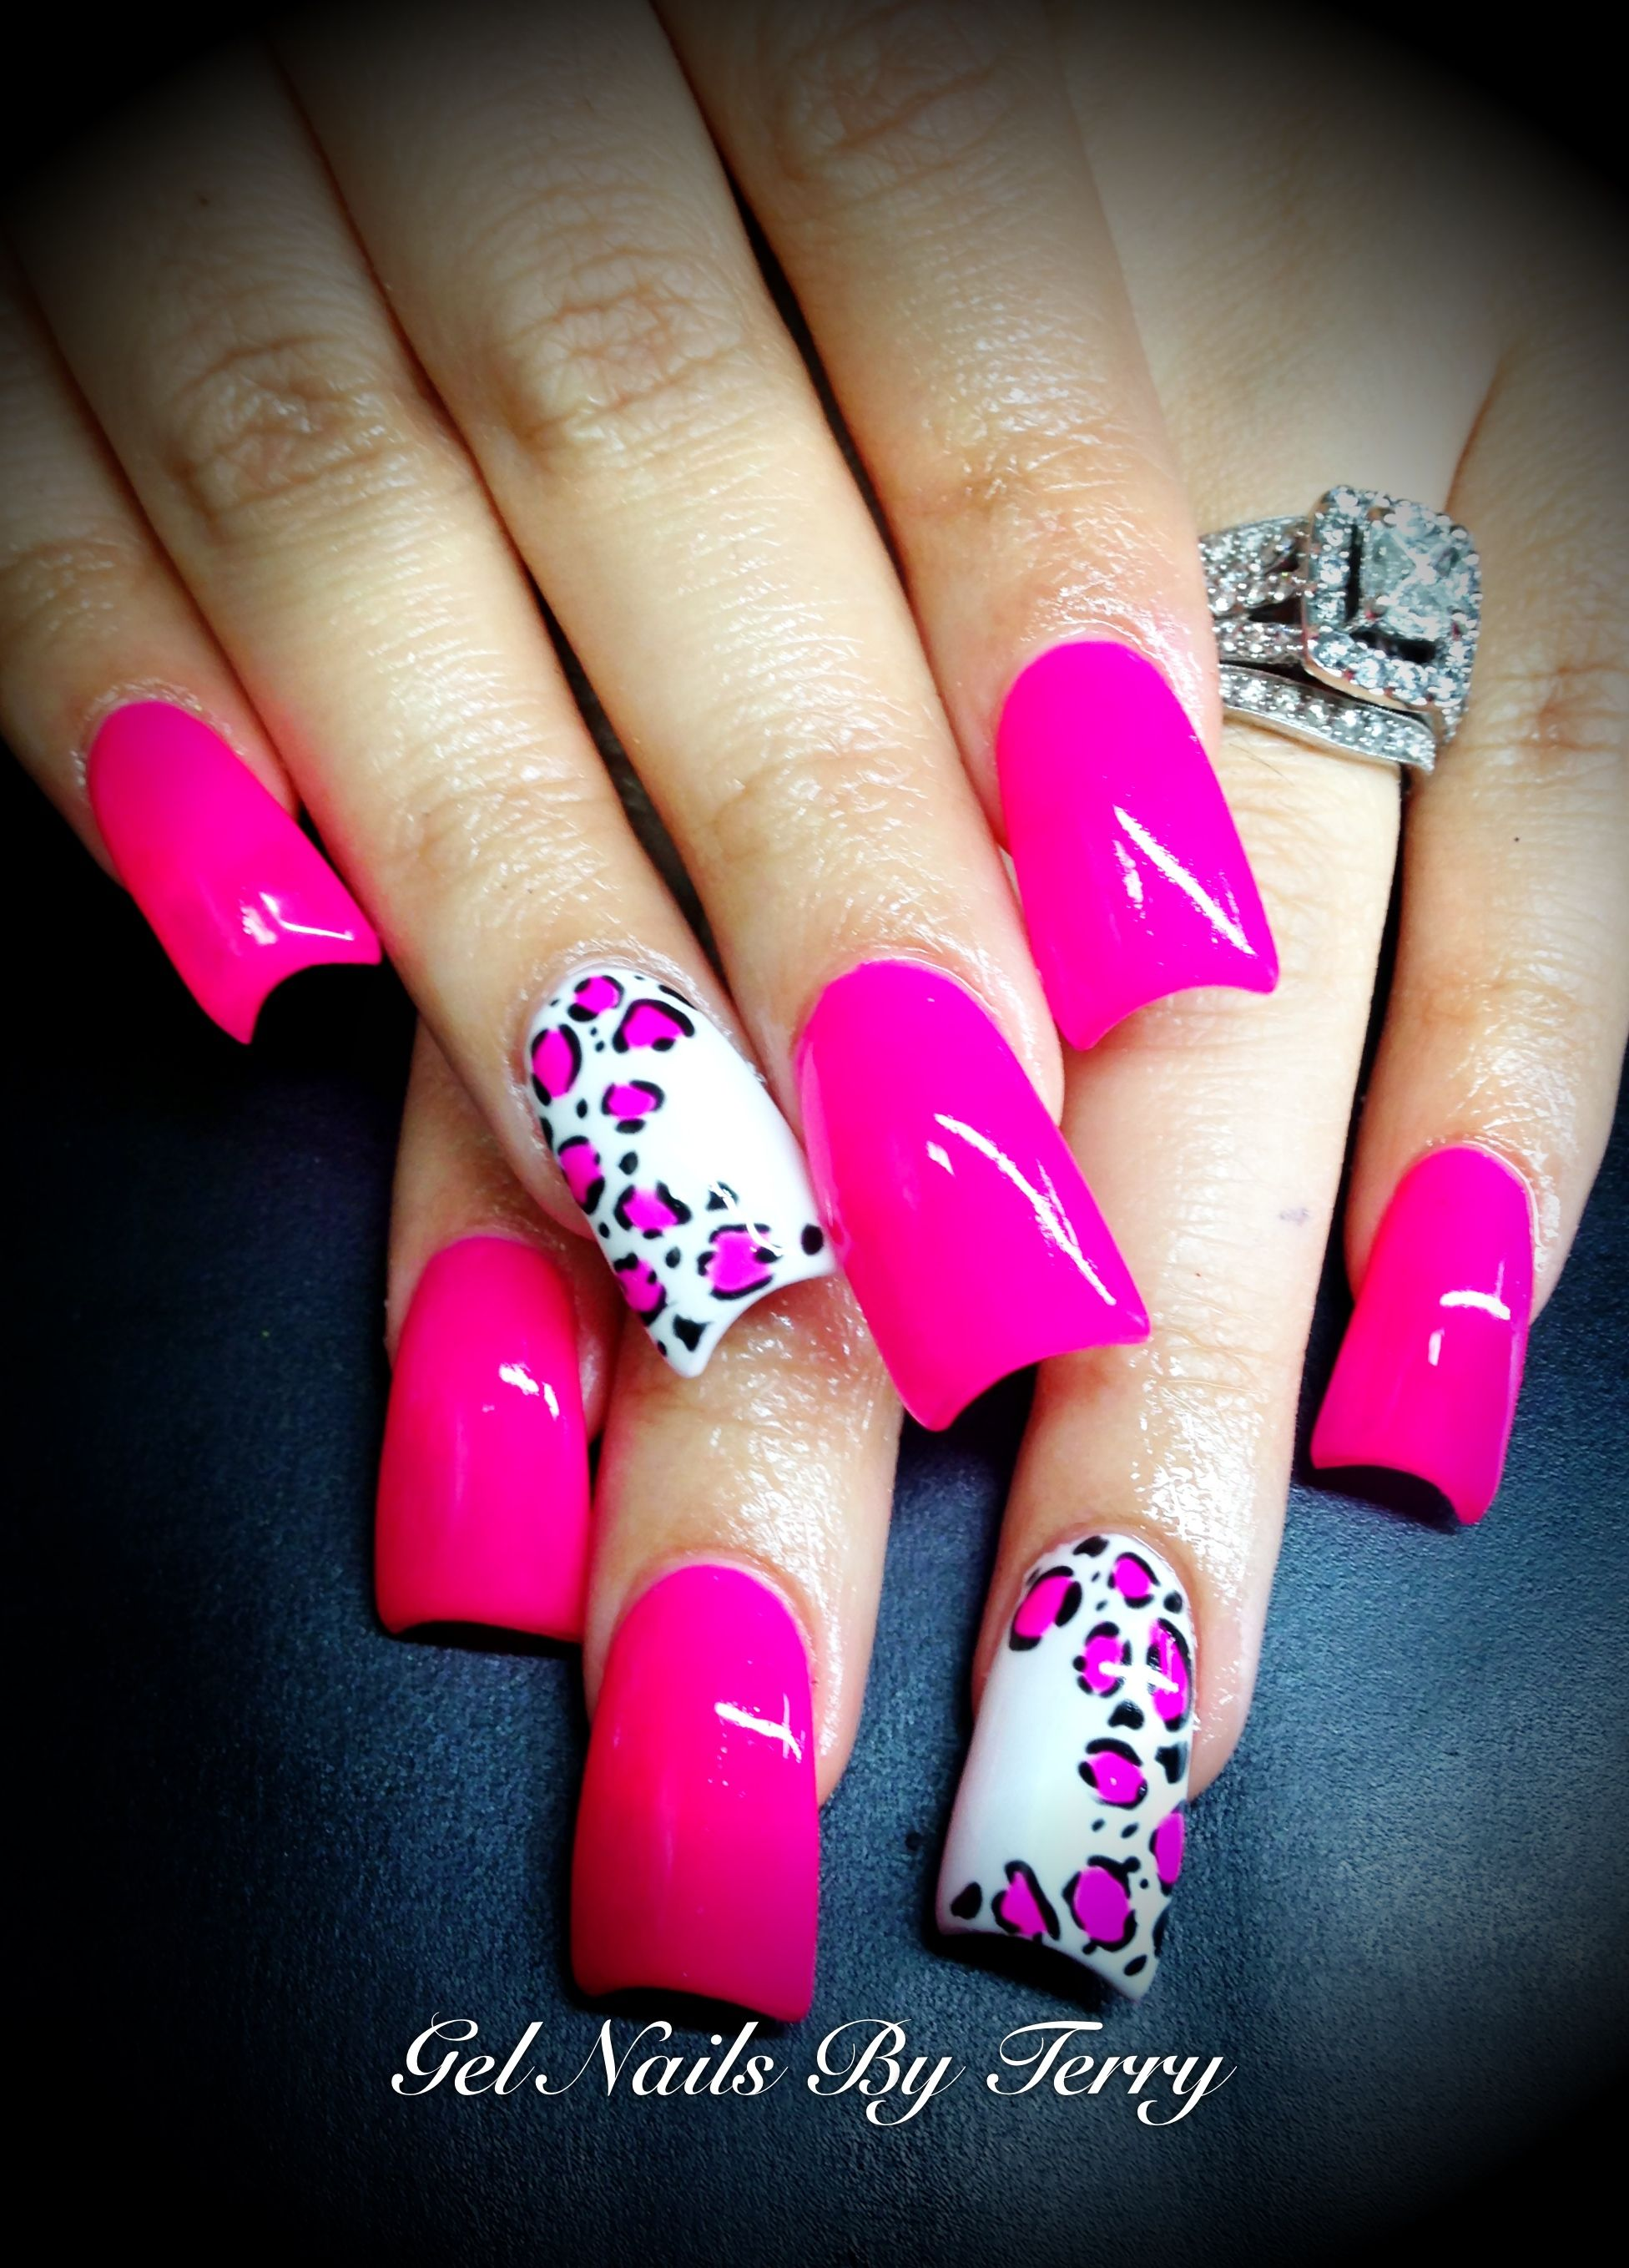 Pin By Terry Nguyen On Animal Print Nail Art By Terry Ghetto Nails Ghetto Nail Designs Cute Gel Nails